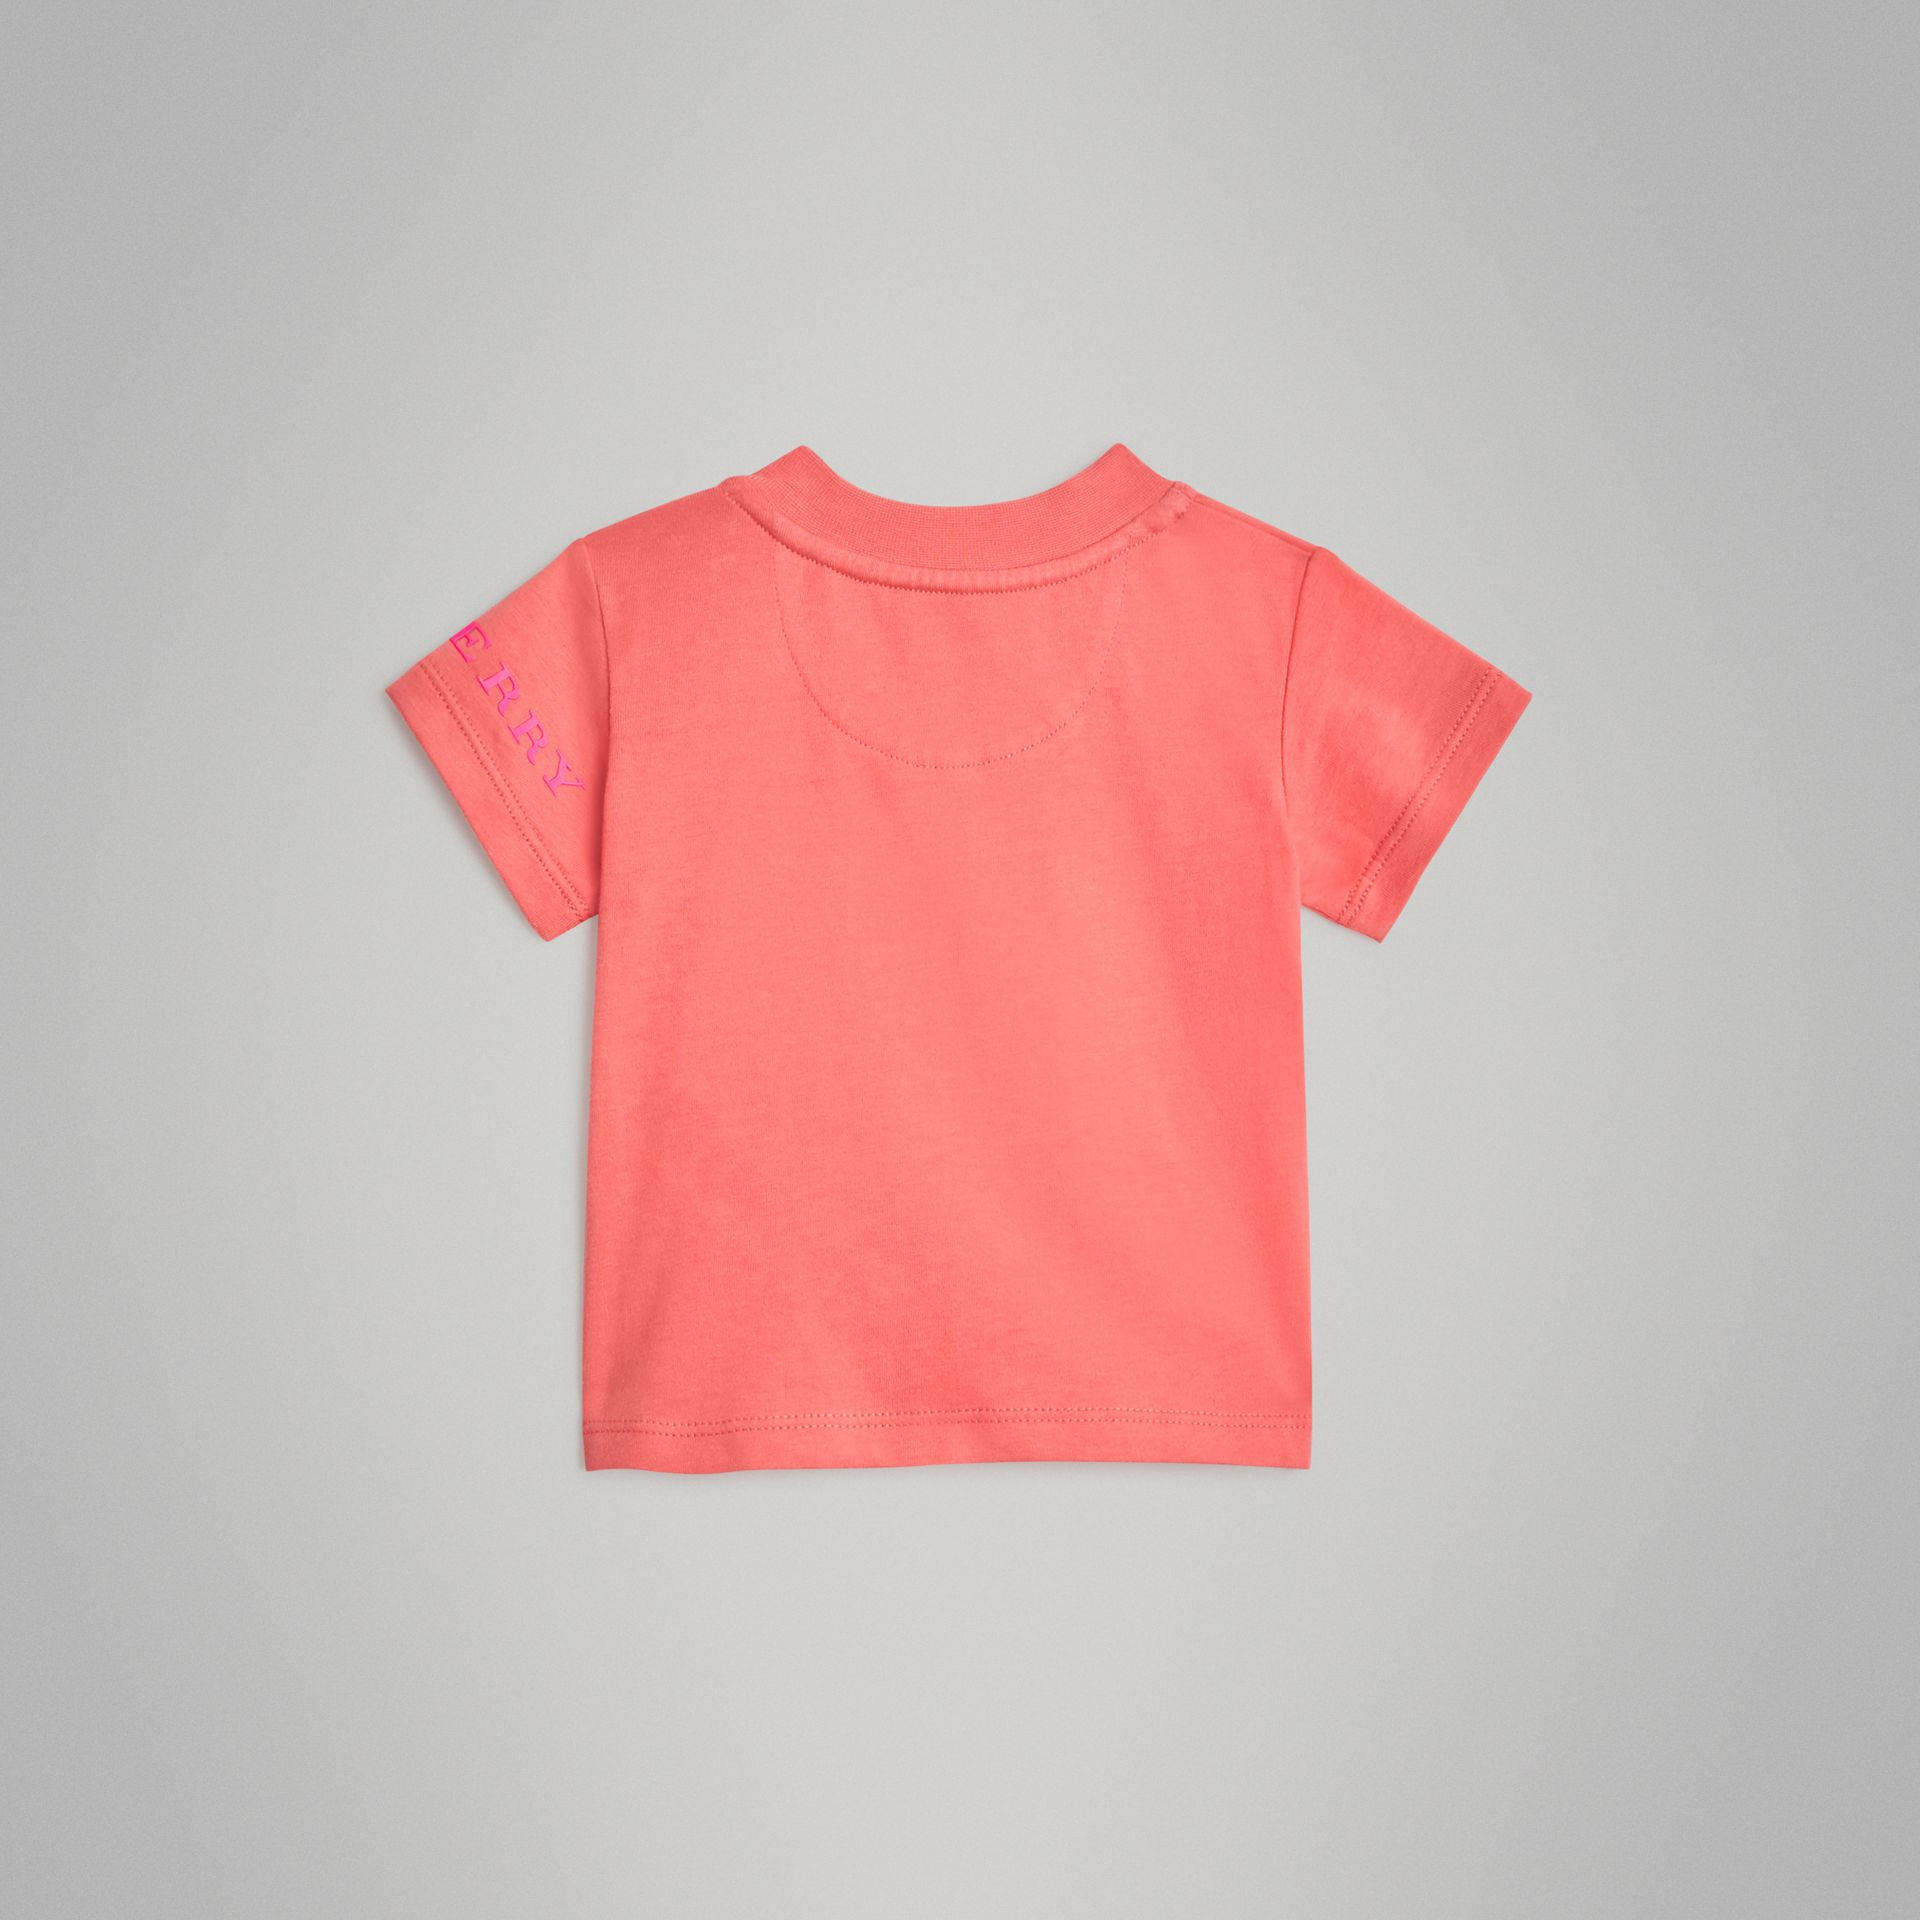 Logo Print Cotton T-shirt in Bright Pink - Children | Burberry - gallery image 3